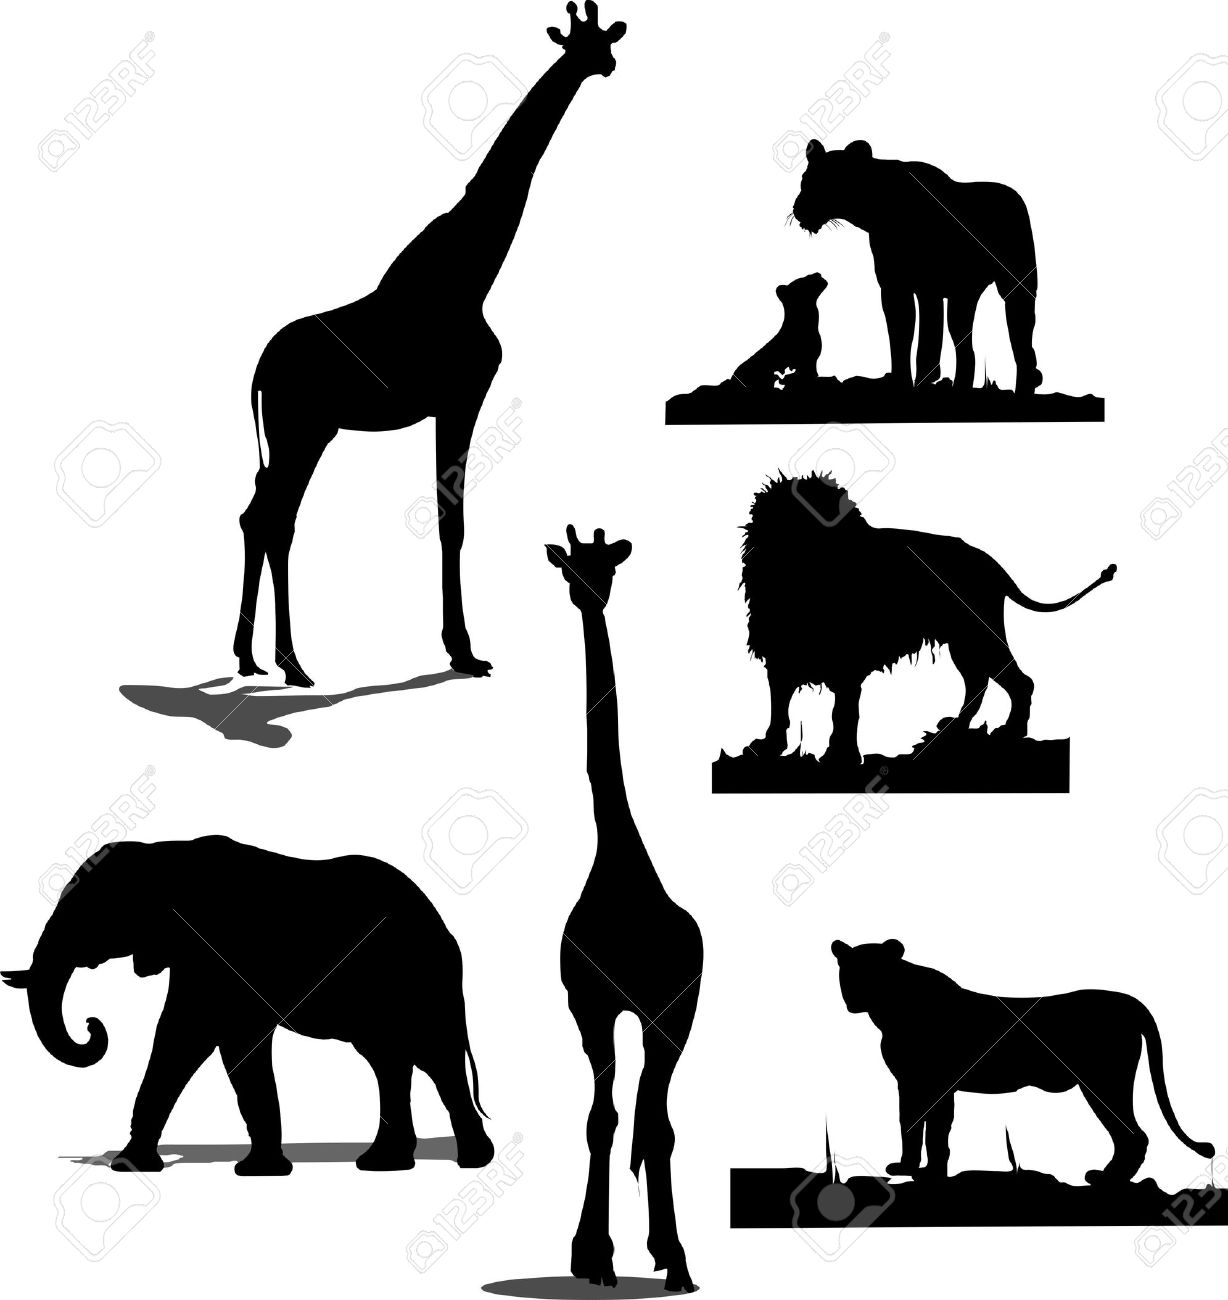 african animal silhouettes black and white silhouettes stock vector 5456036